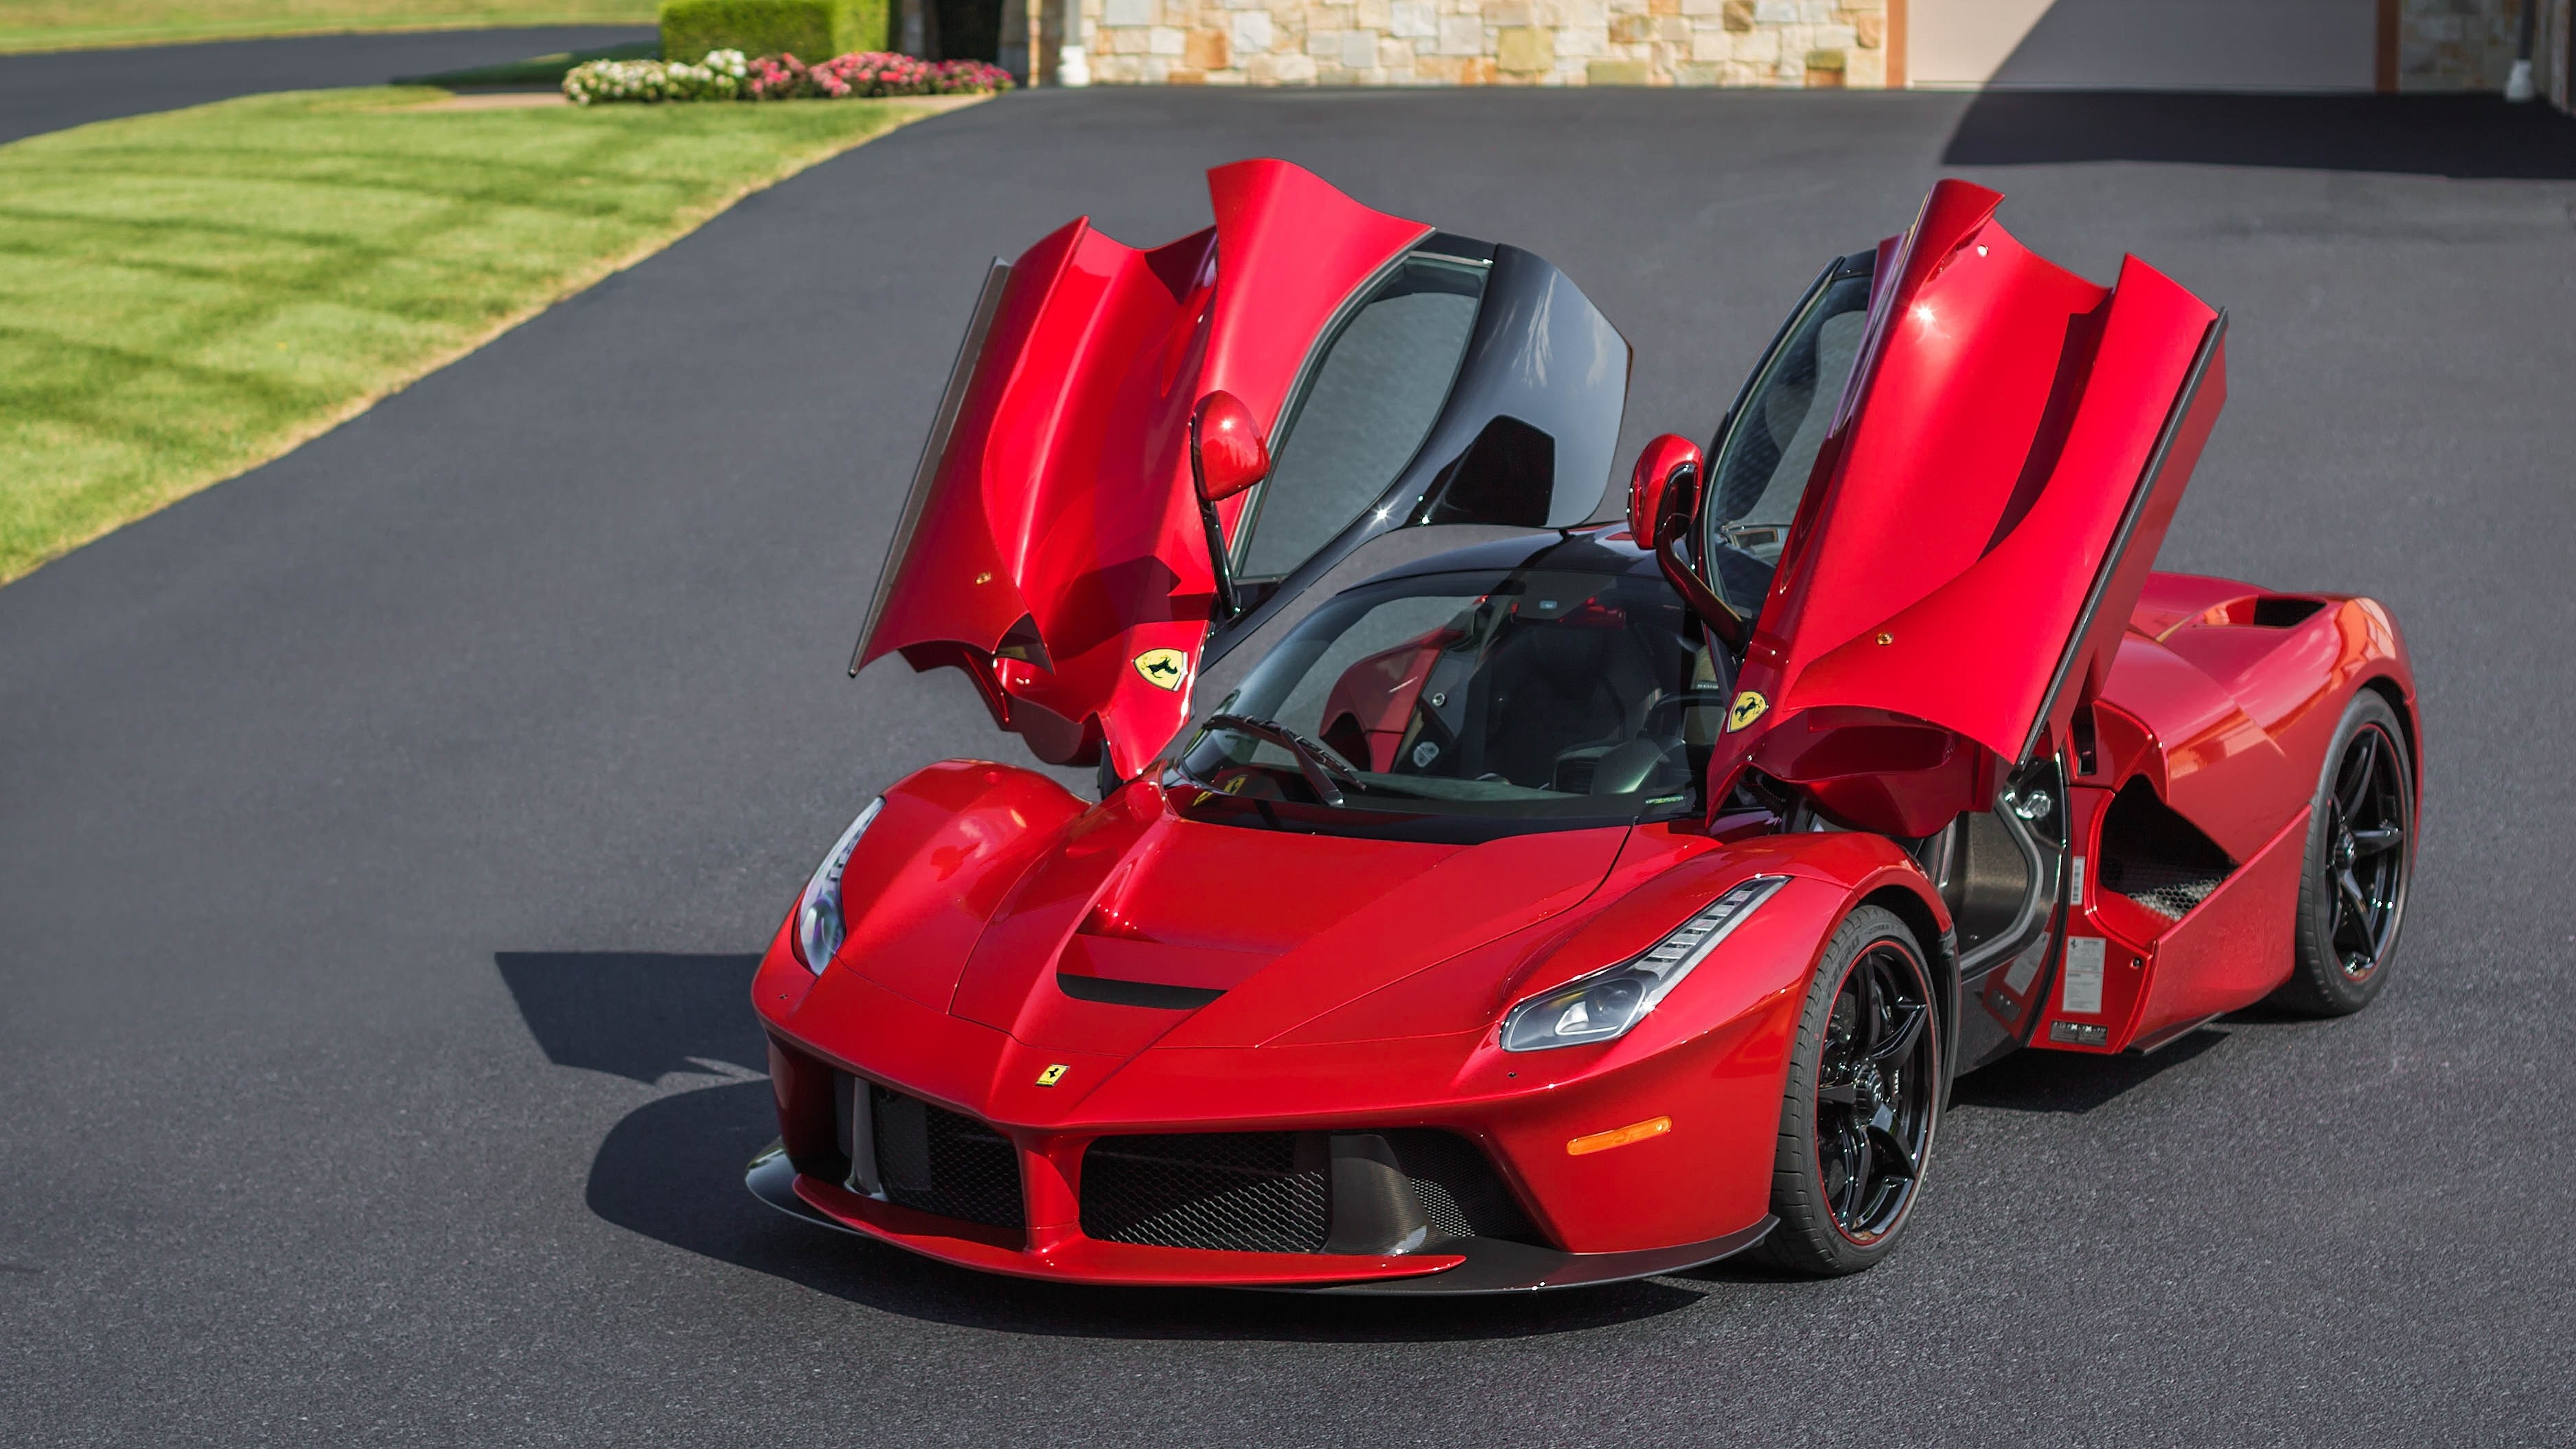 Ferrari Laferrari Wallpapers (77+ images)